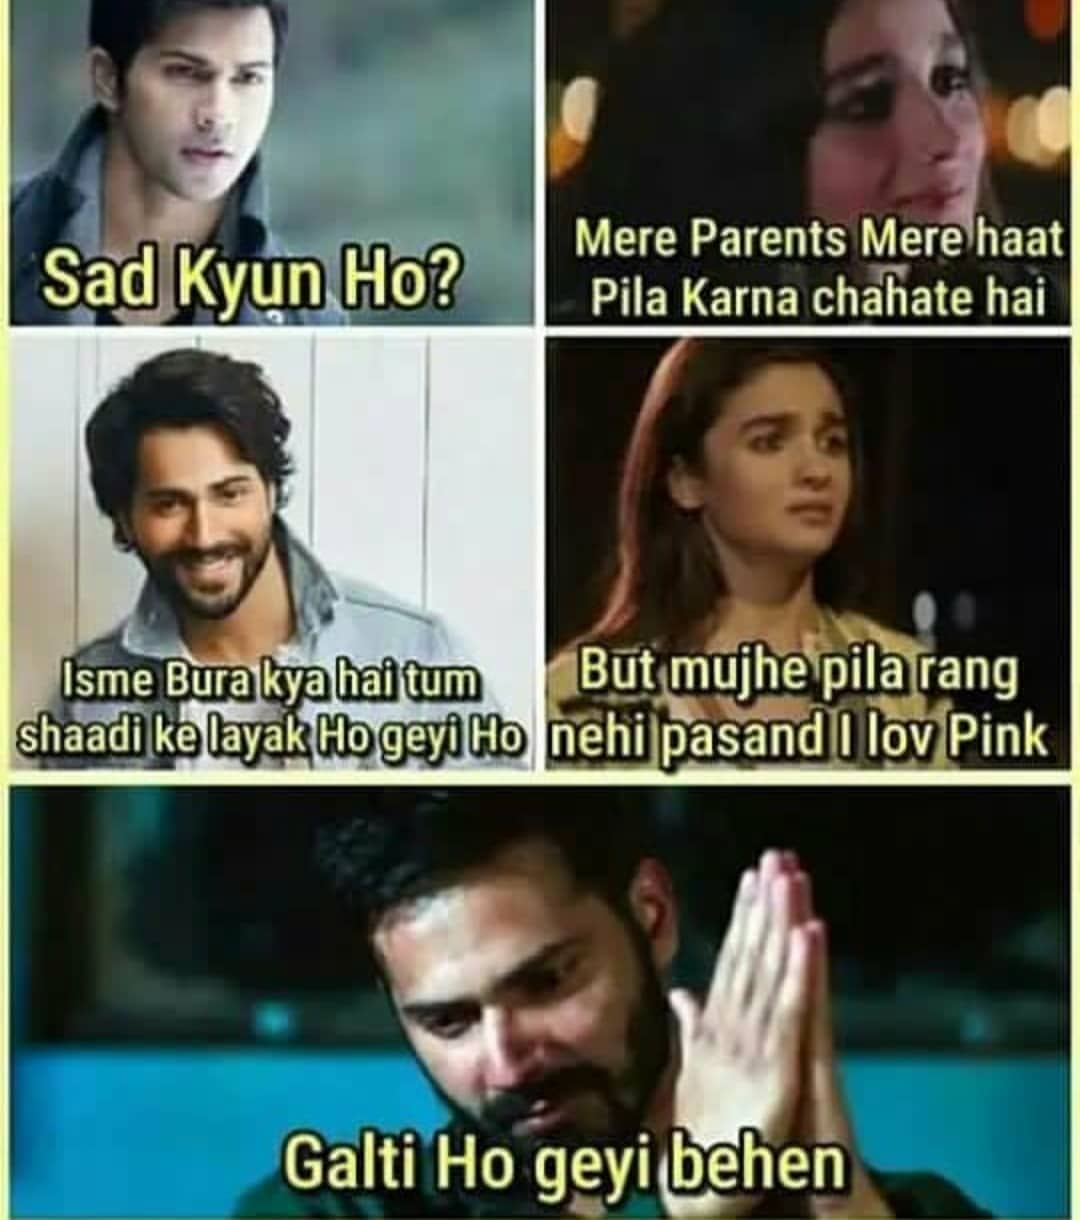 Funny Memes In Hindi For Girls Funny Memes 2019 At memesmonkey.com find thousands of memes categorized into thousands of categories. funny memes in hindi for girls funny